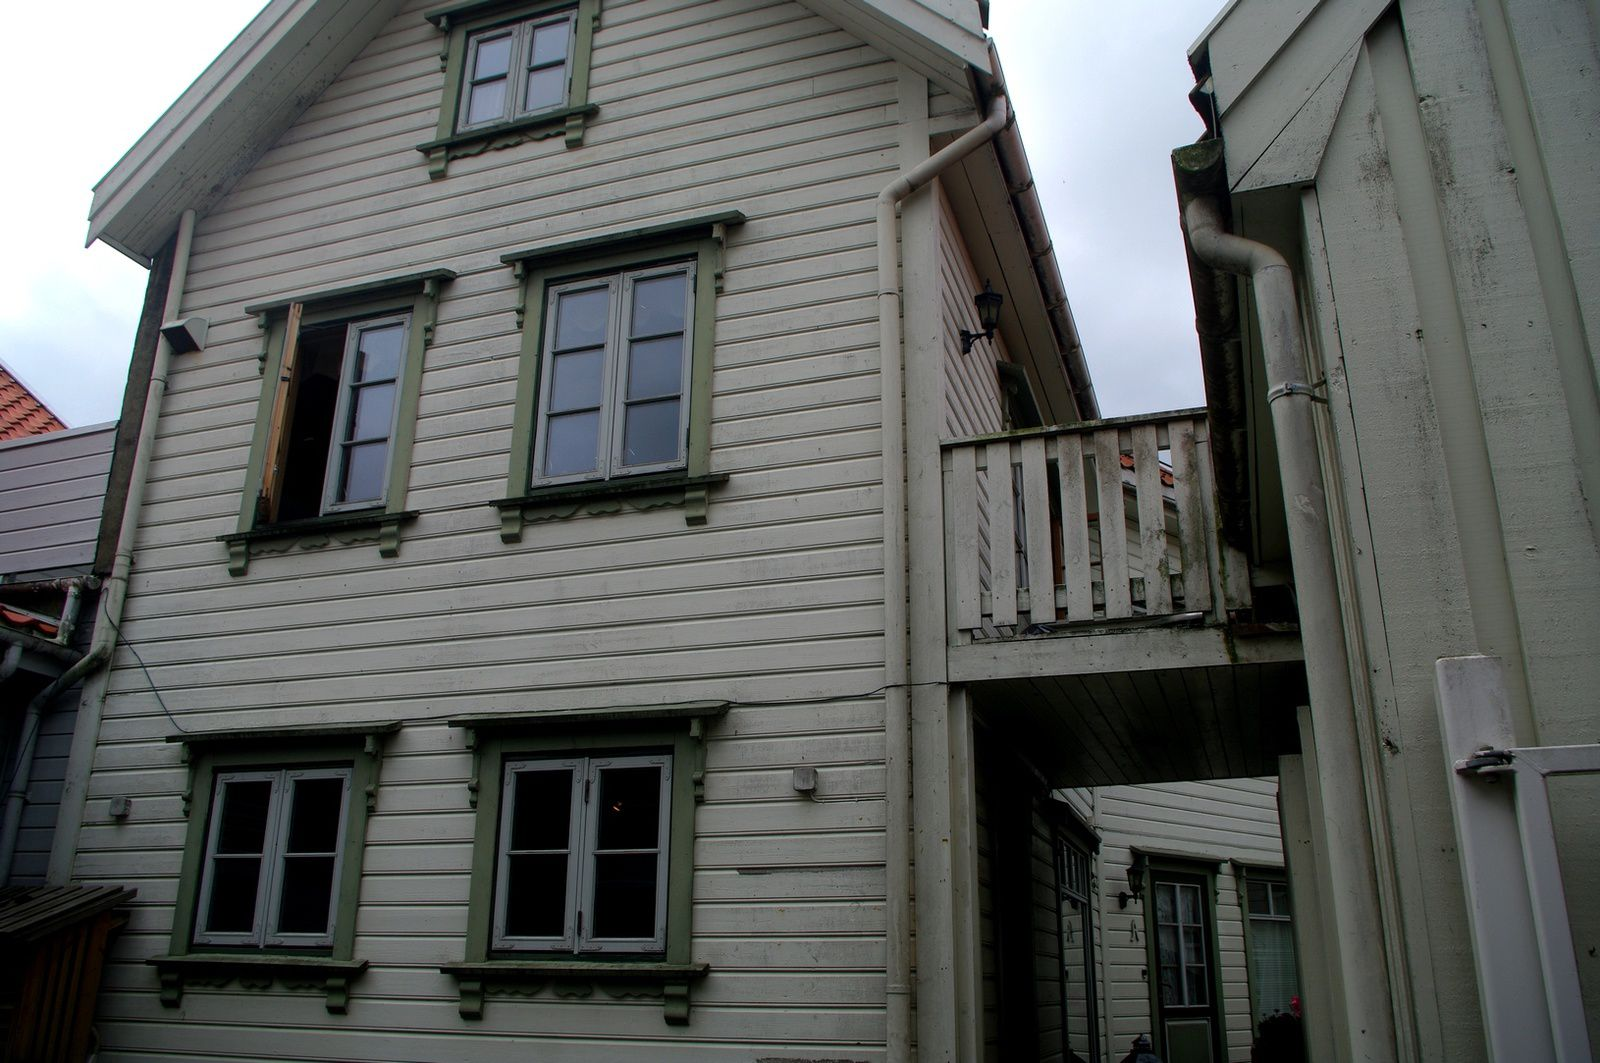 maisons blanches d'Egersund